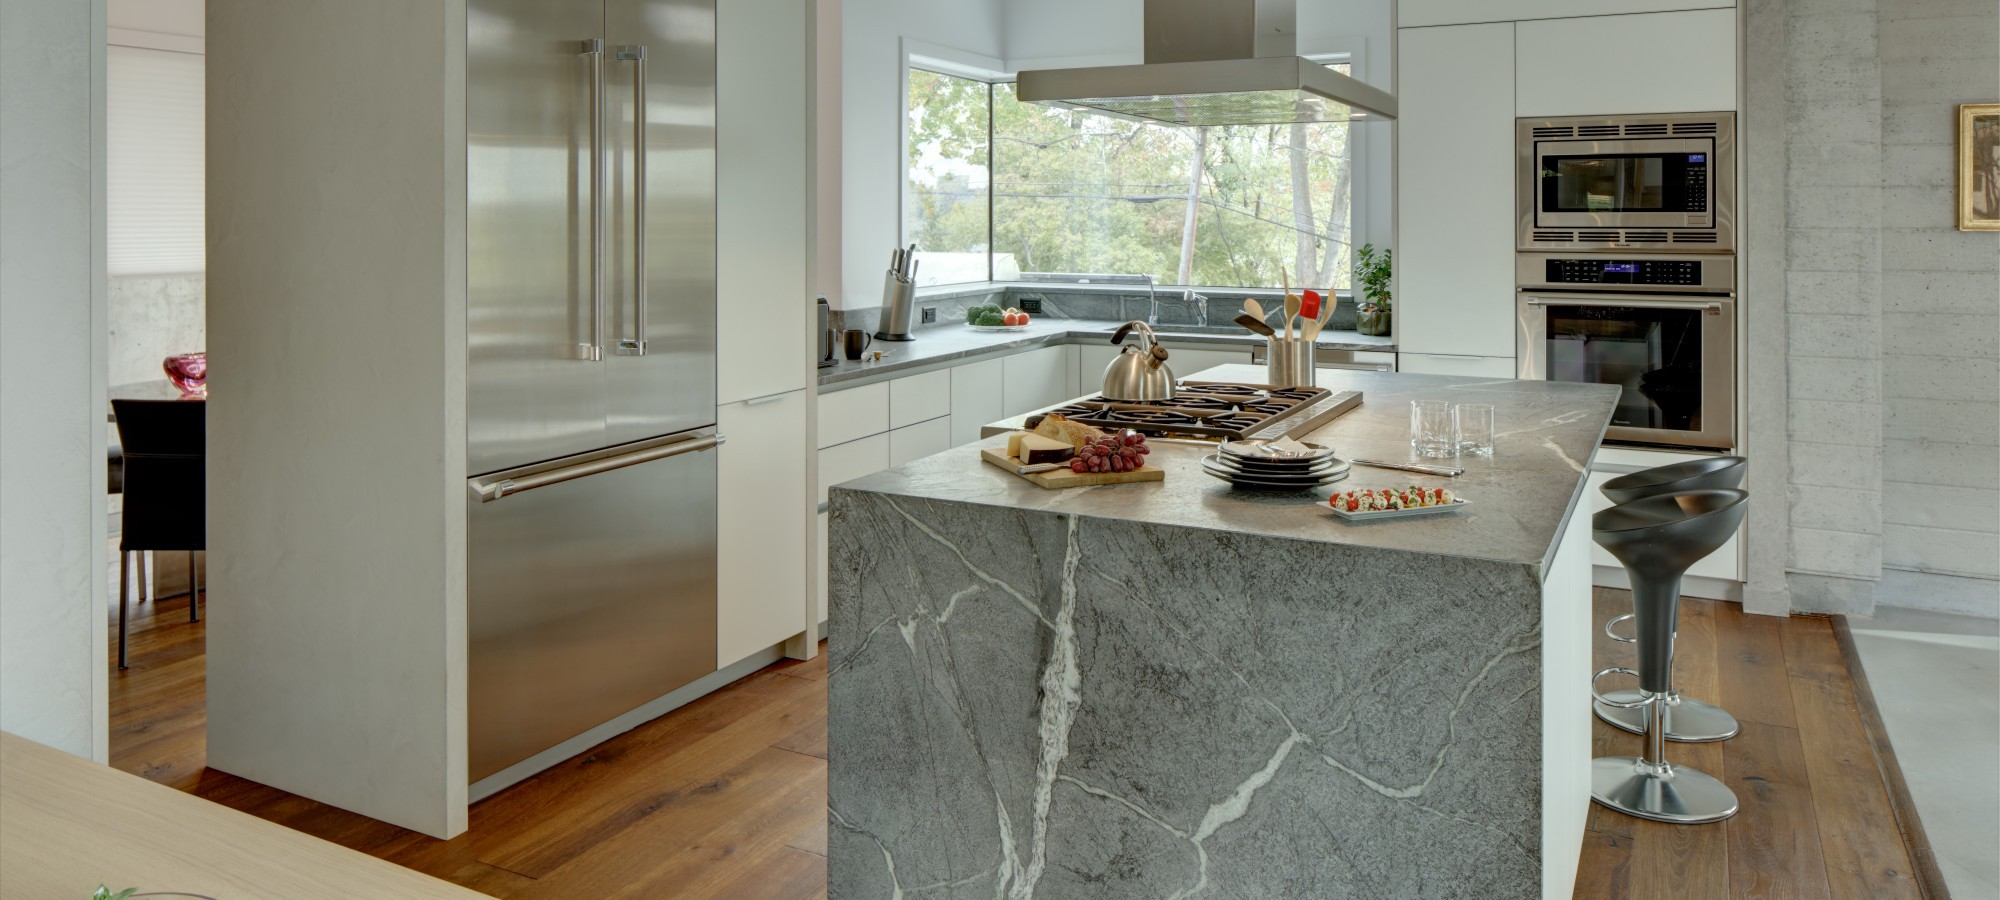 Cost Effective Designs Using Contemporary Kitchen Cabinets By Cesar Nyc Cesarnyc Medium